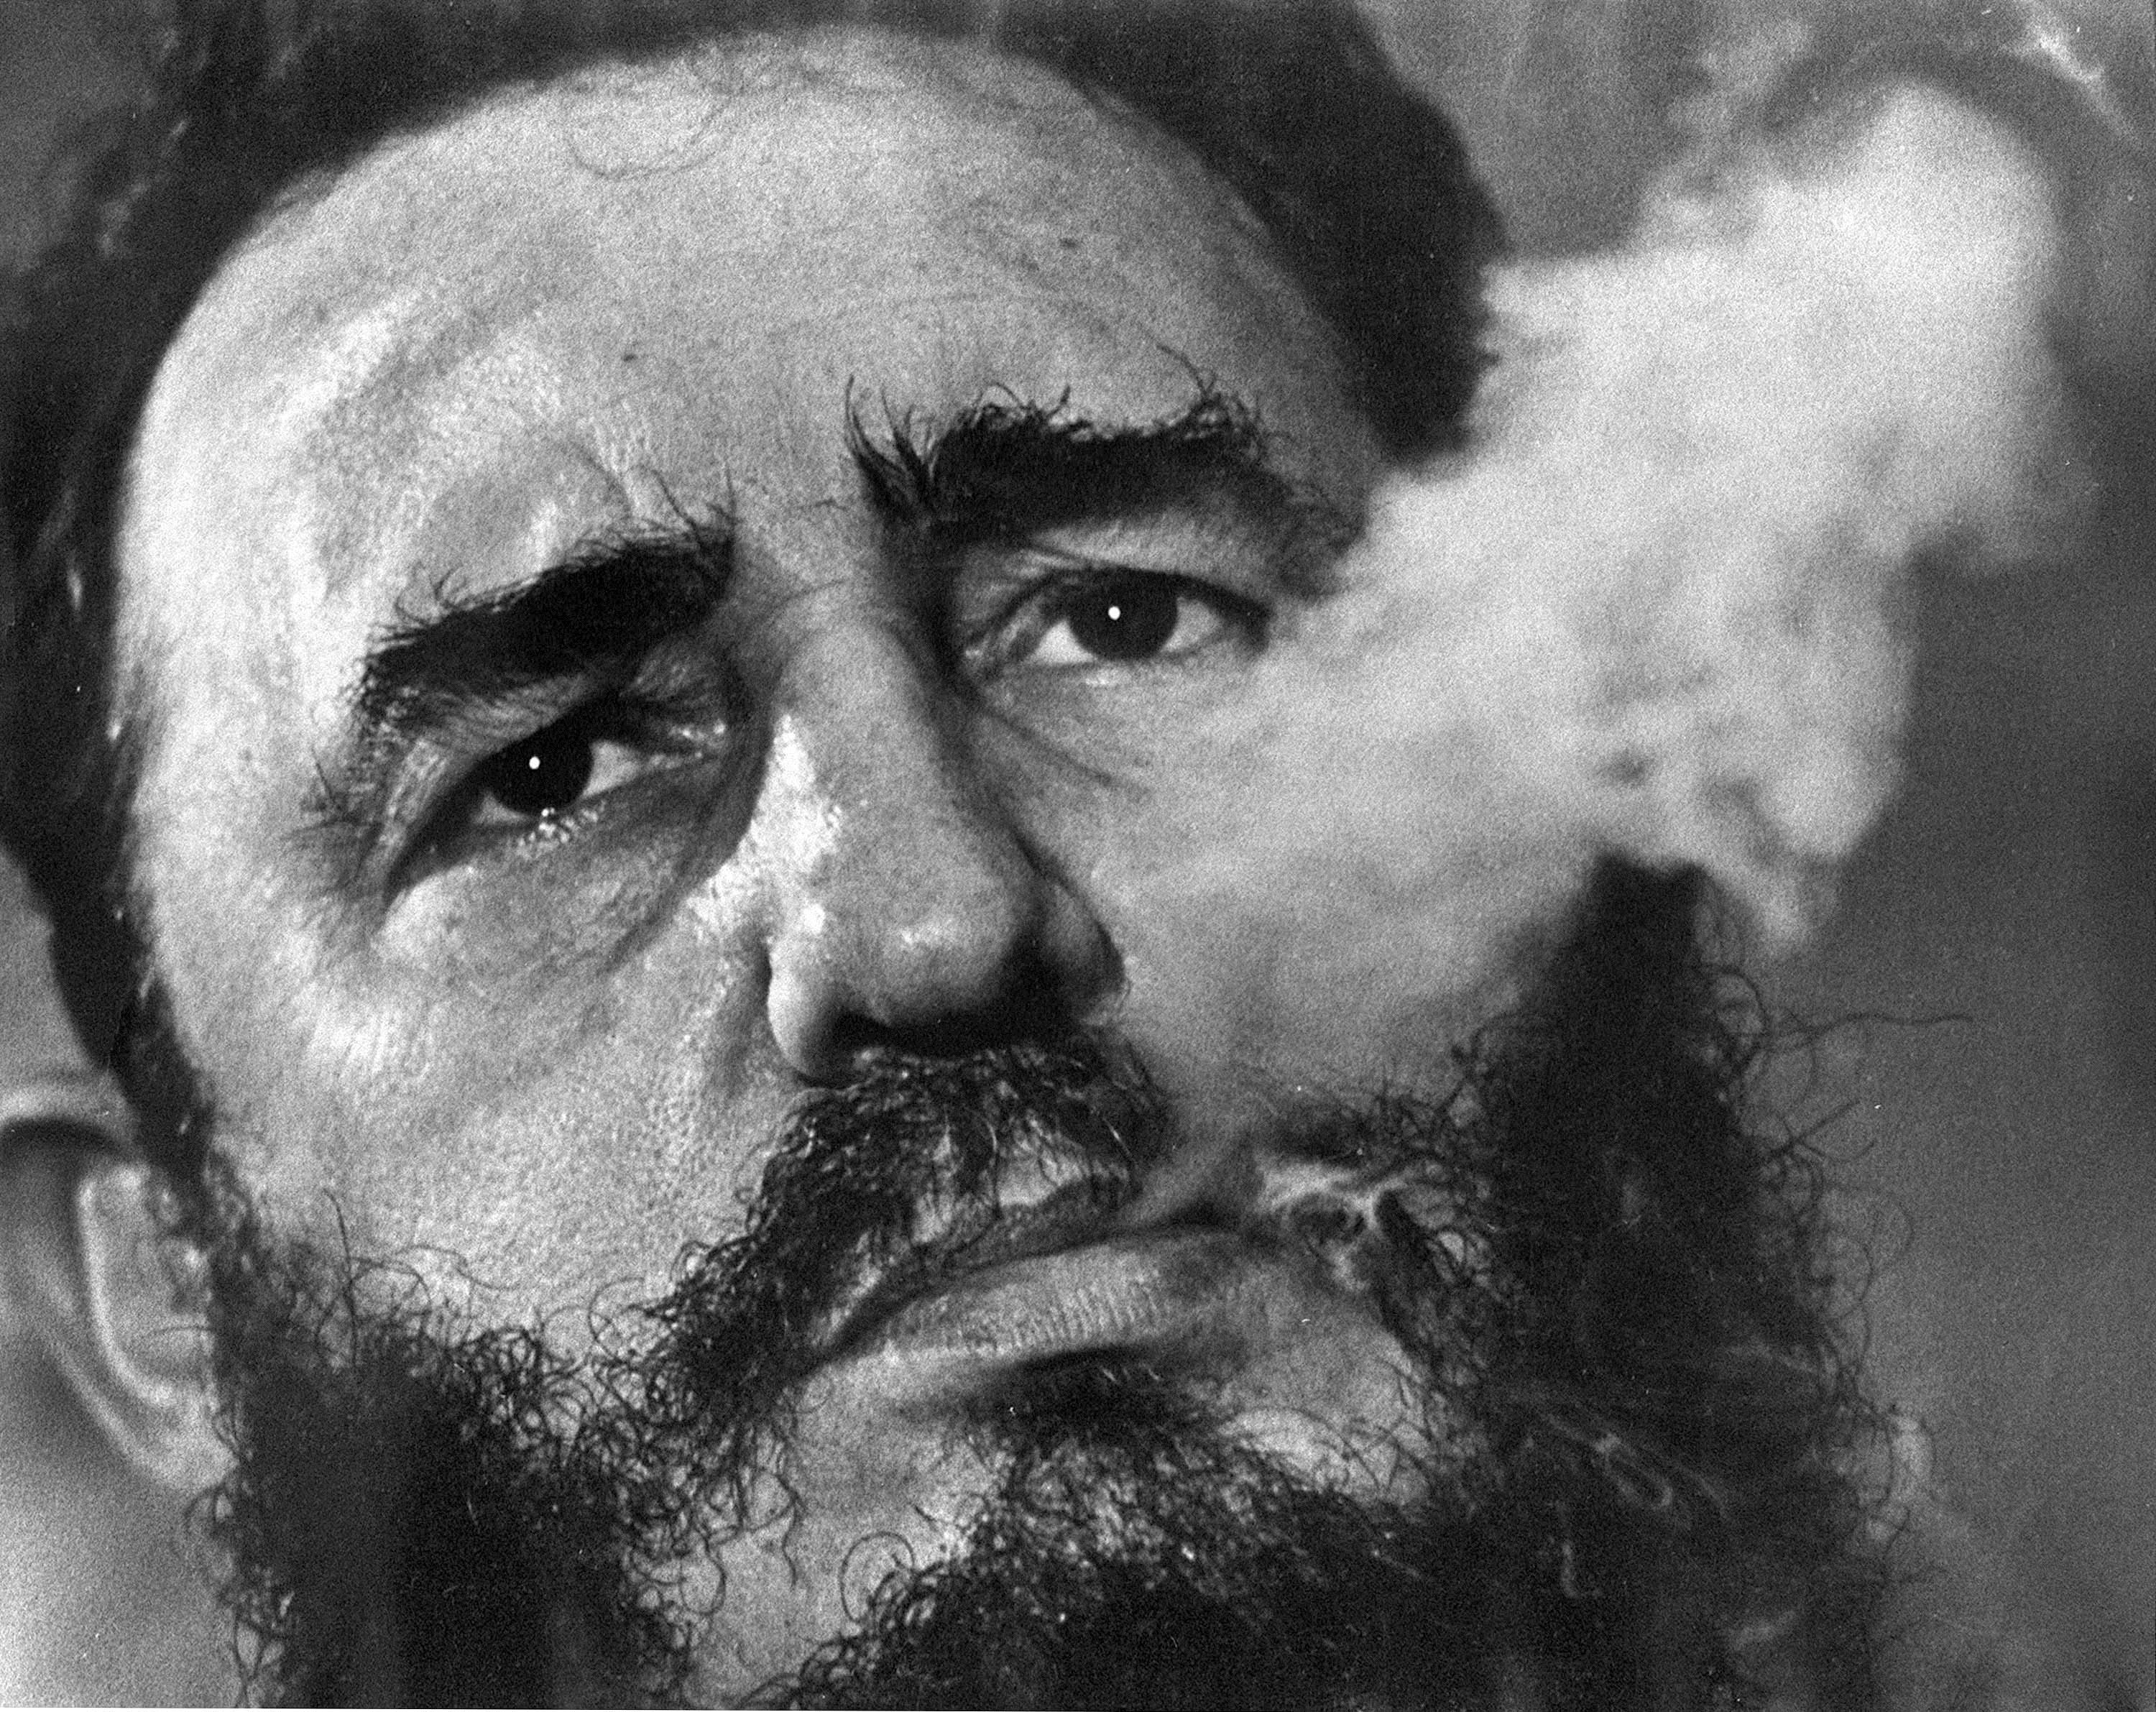 In this March 1985 AP file photo Cuba's leader Fidel Castro exhales cigar smoke during an interview at the presidential palace in Havana, Cuba.   AP file photo/Charles Tasnadi, St. George News